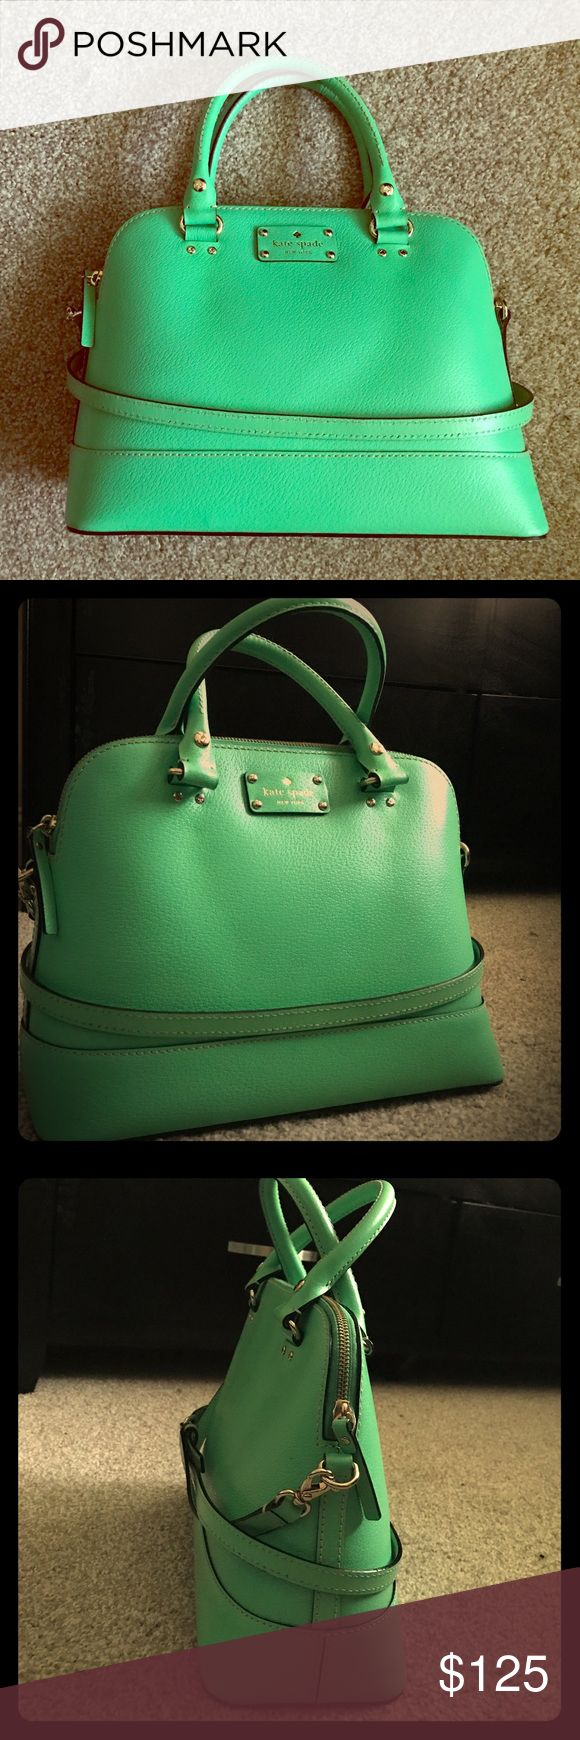 Kate Spade Wellesley Satchel Bright green Wellesley satchel (Authentic and Leather) Comes with dust jacket, no wear/tear. Purchased at Kate Spade outlet in Wrentham, MA. kate spade Bags Satchels